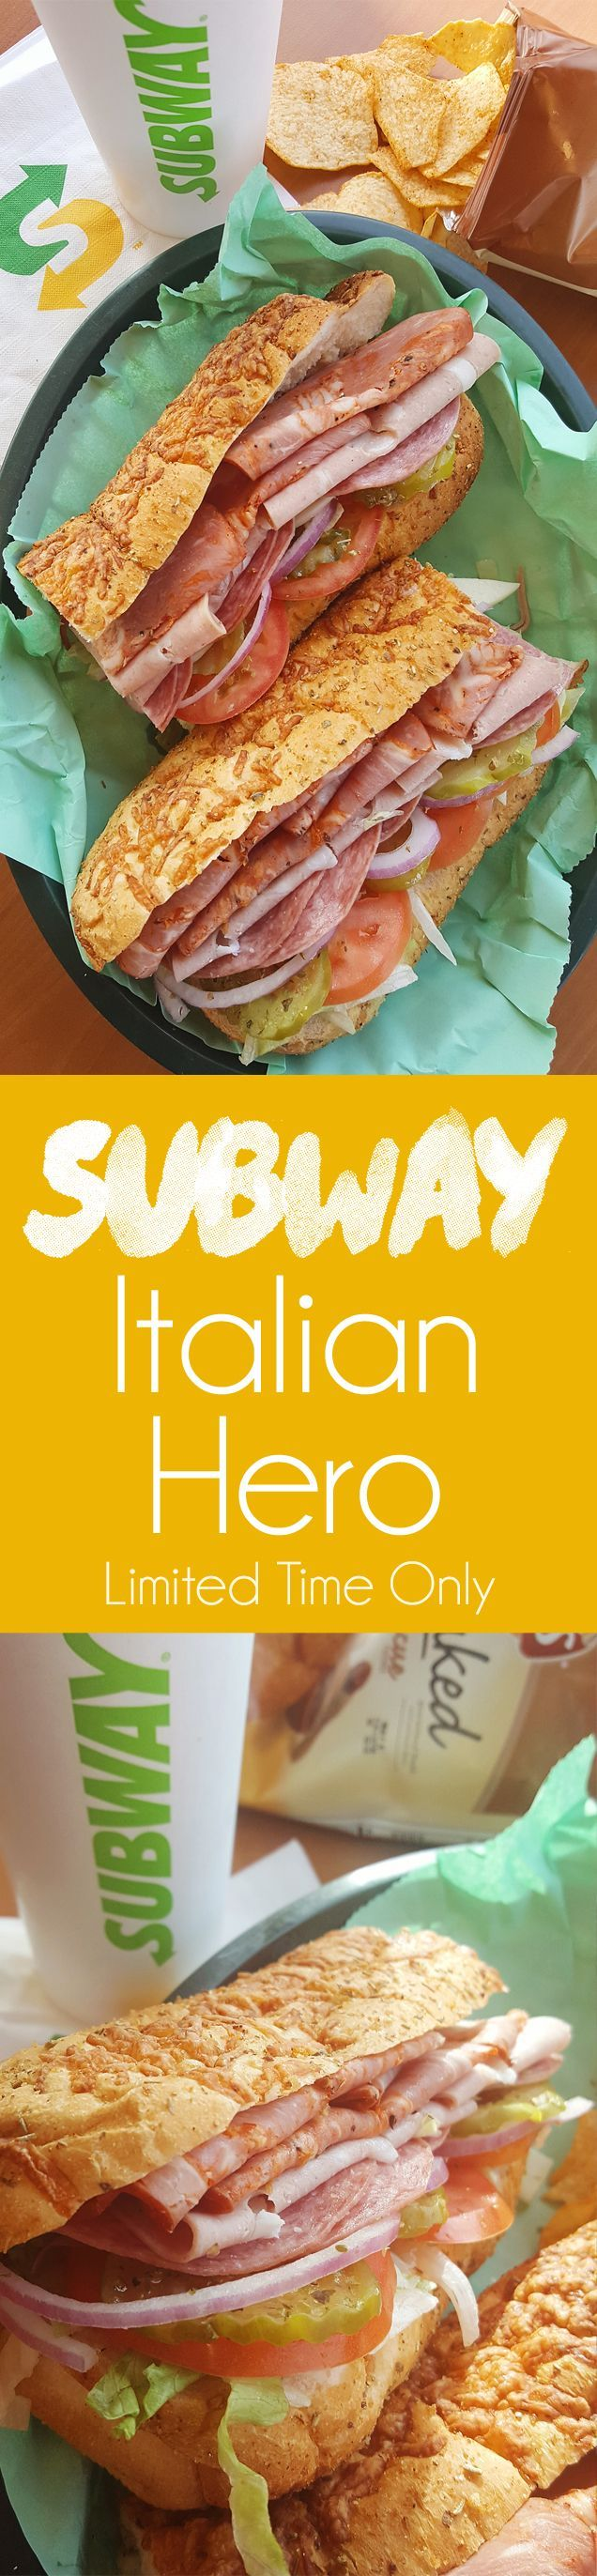 SUBWAY Italian Hero is a flavorful sub sandwich with authentic Italian flavors. Fresh bread is topped with Capicola, Mortadella, Genoa Salami, Provolone, your preferred veggies, oregano, oil and red wine vinegar for a delicious and convenient meal you will love!